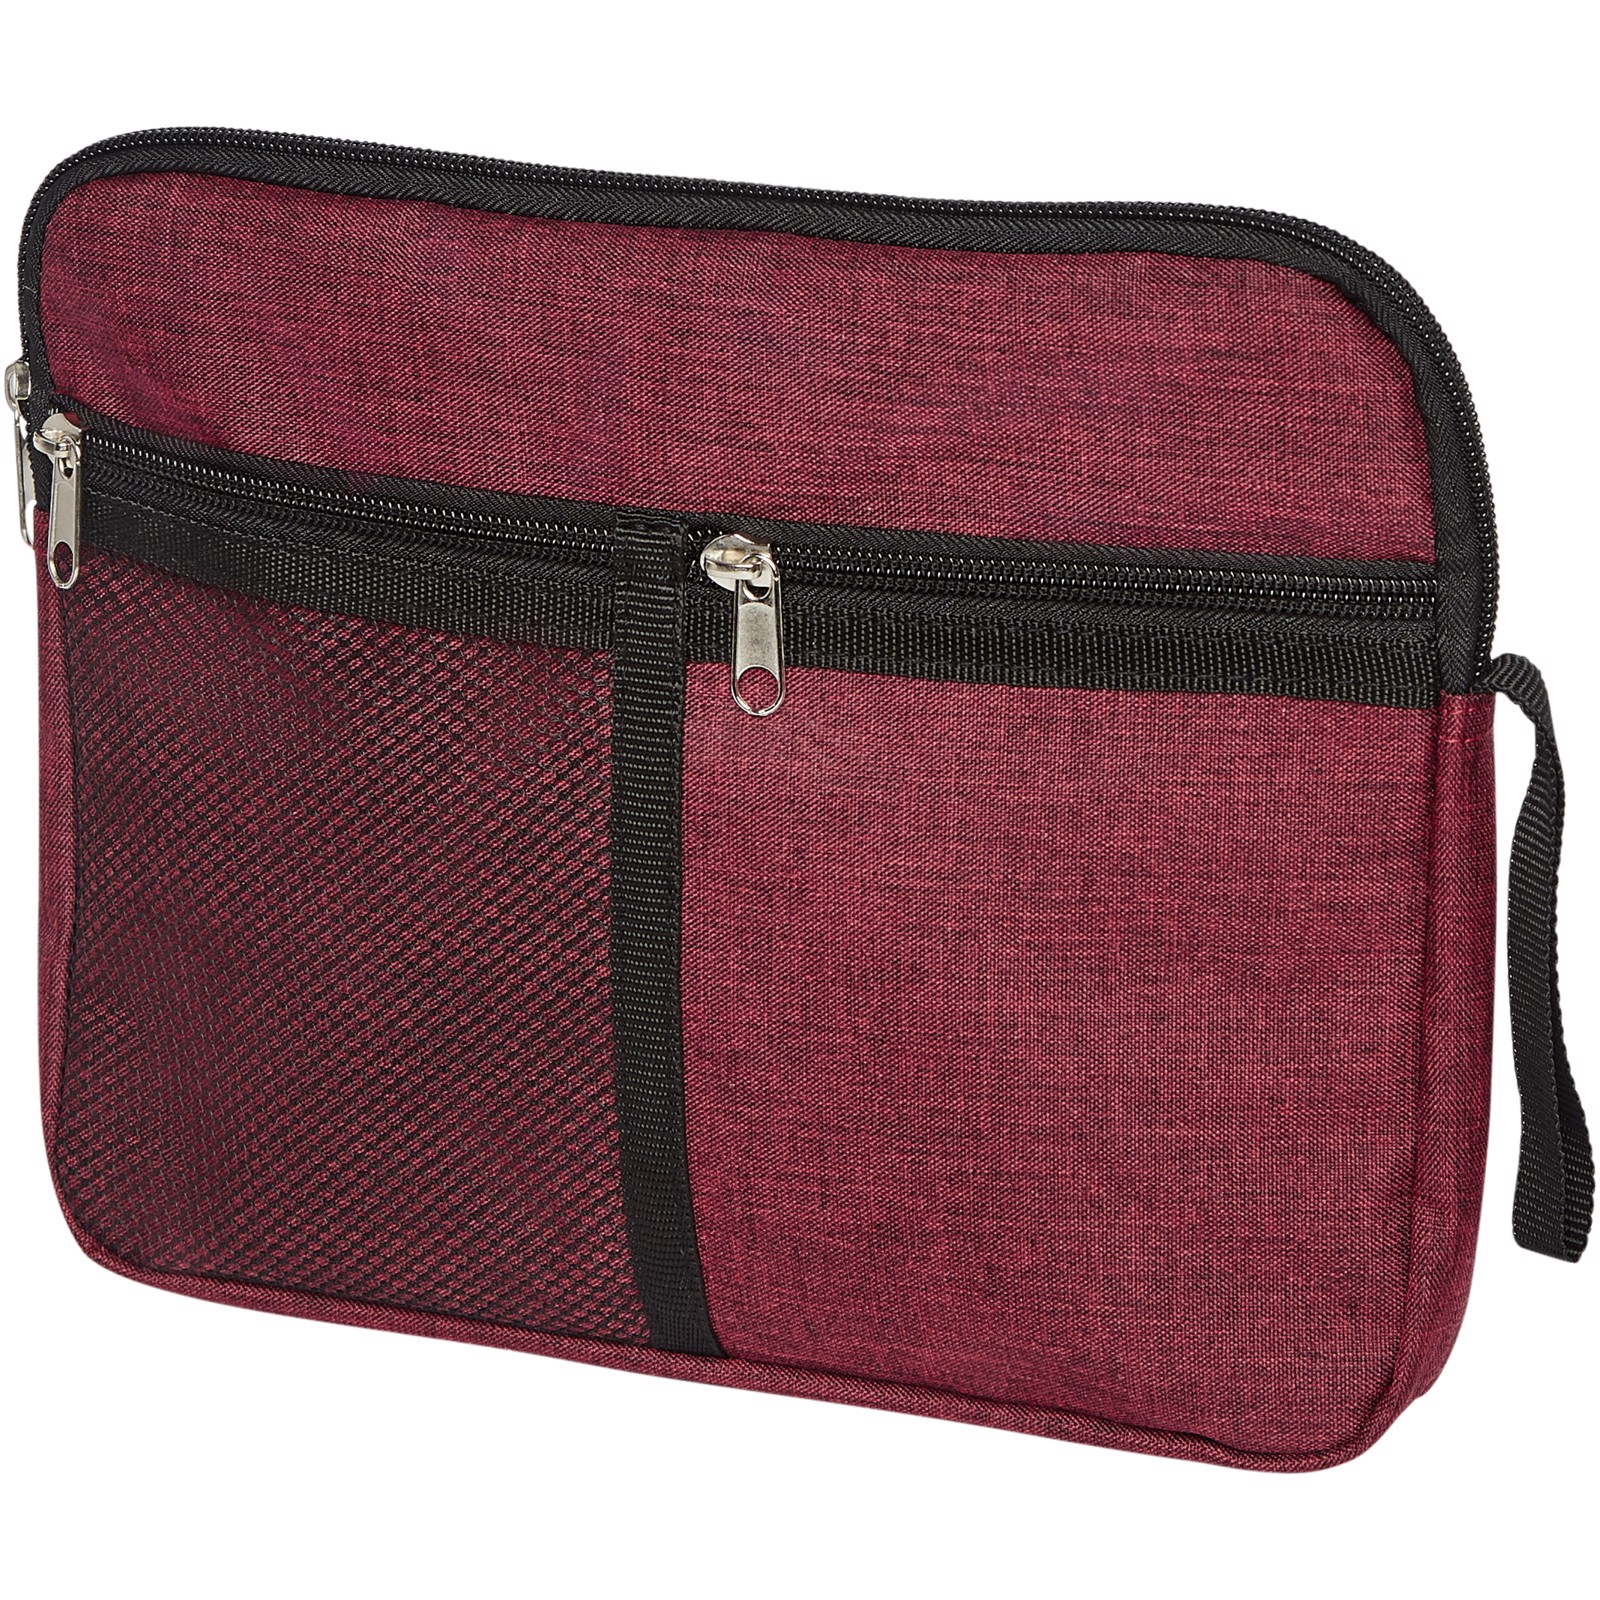 Hoss toiletry pouch - Heather dark red